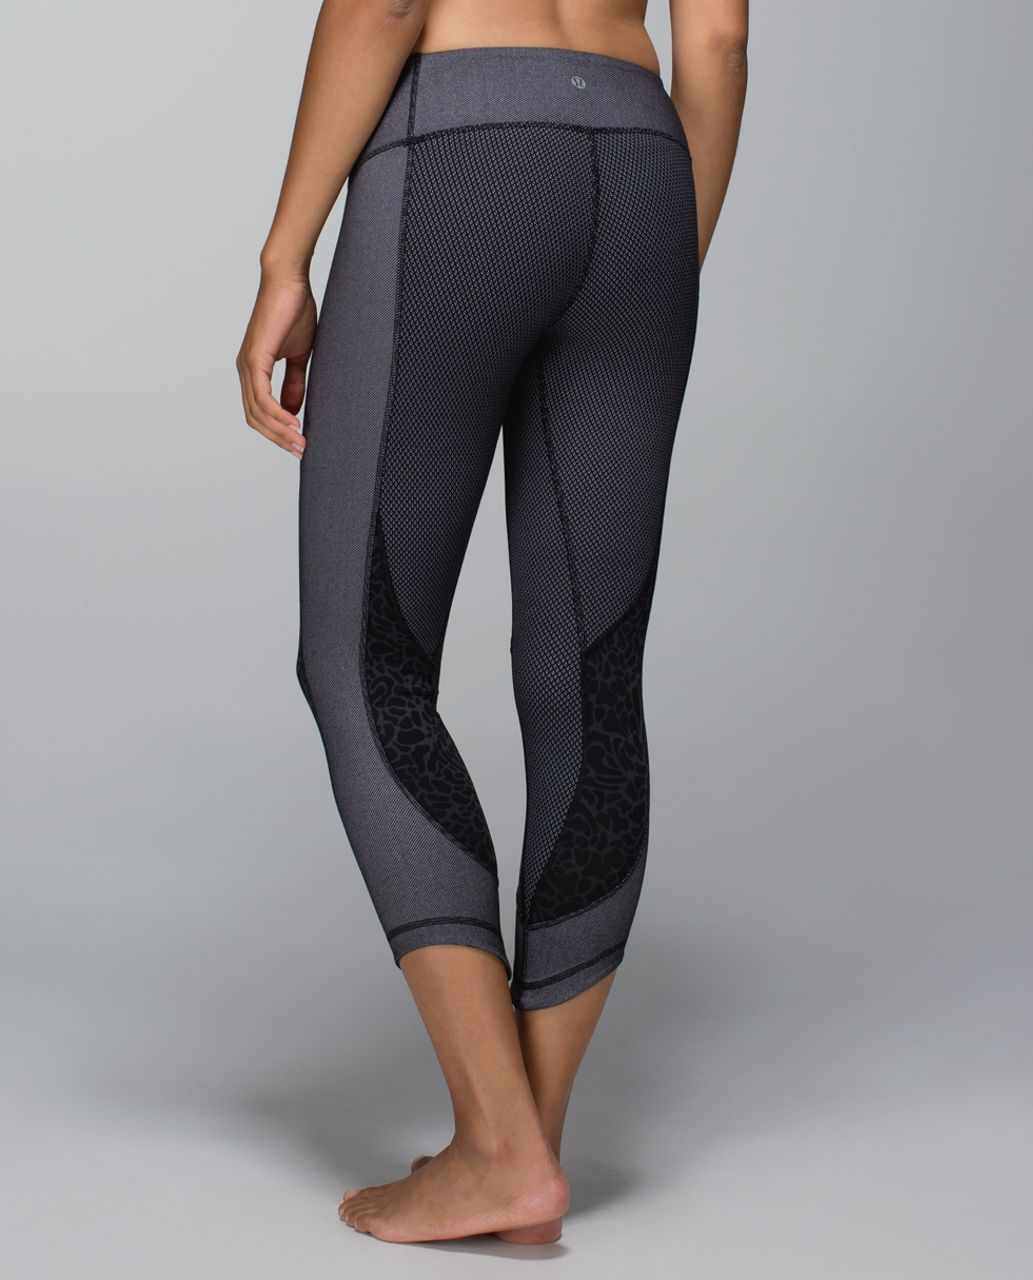 Lululemon Wunder Under Crop *Sashiko - Diamond Dot Black White / Black / Petal Camo Printed Black Deep Coal